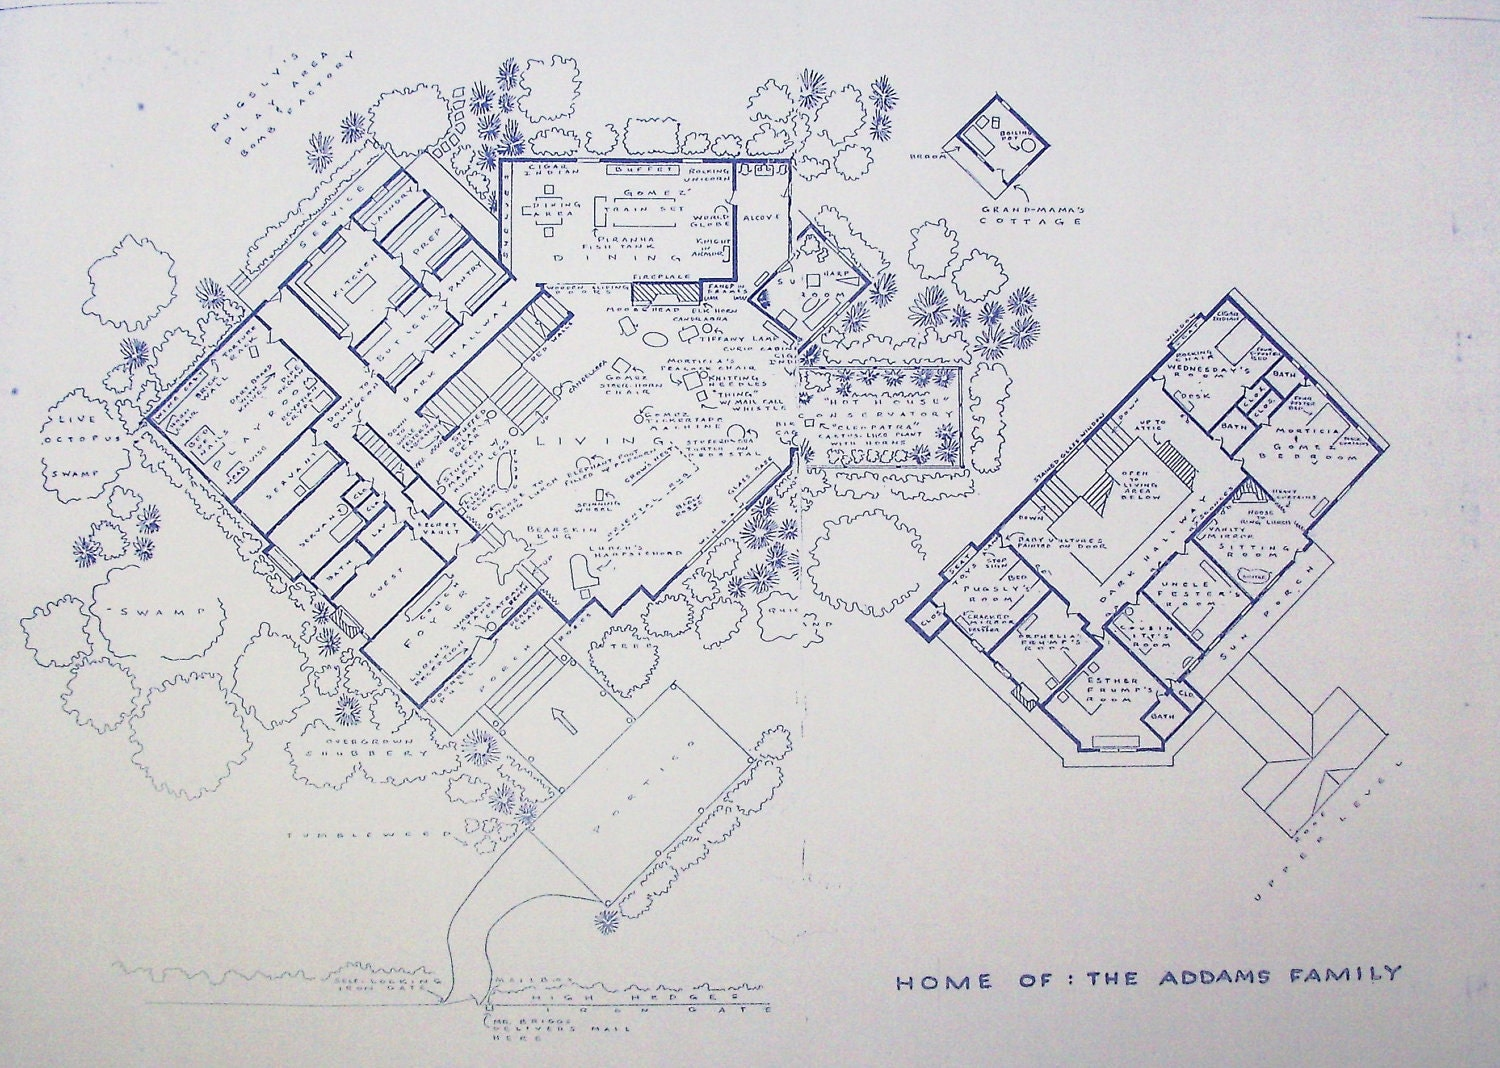 house from addams family tv show blueprint by blueprintplace On addams family house floor plan